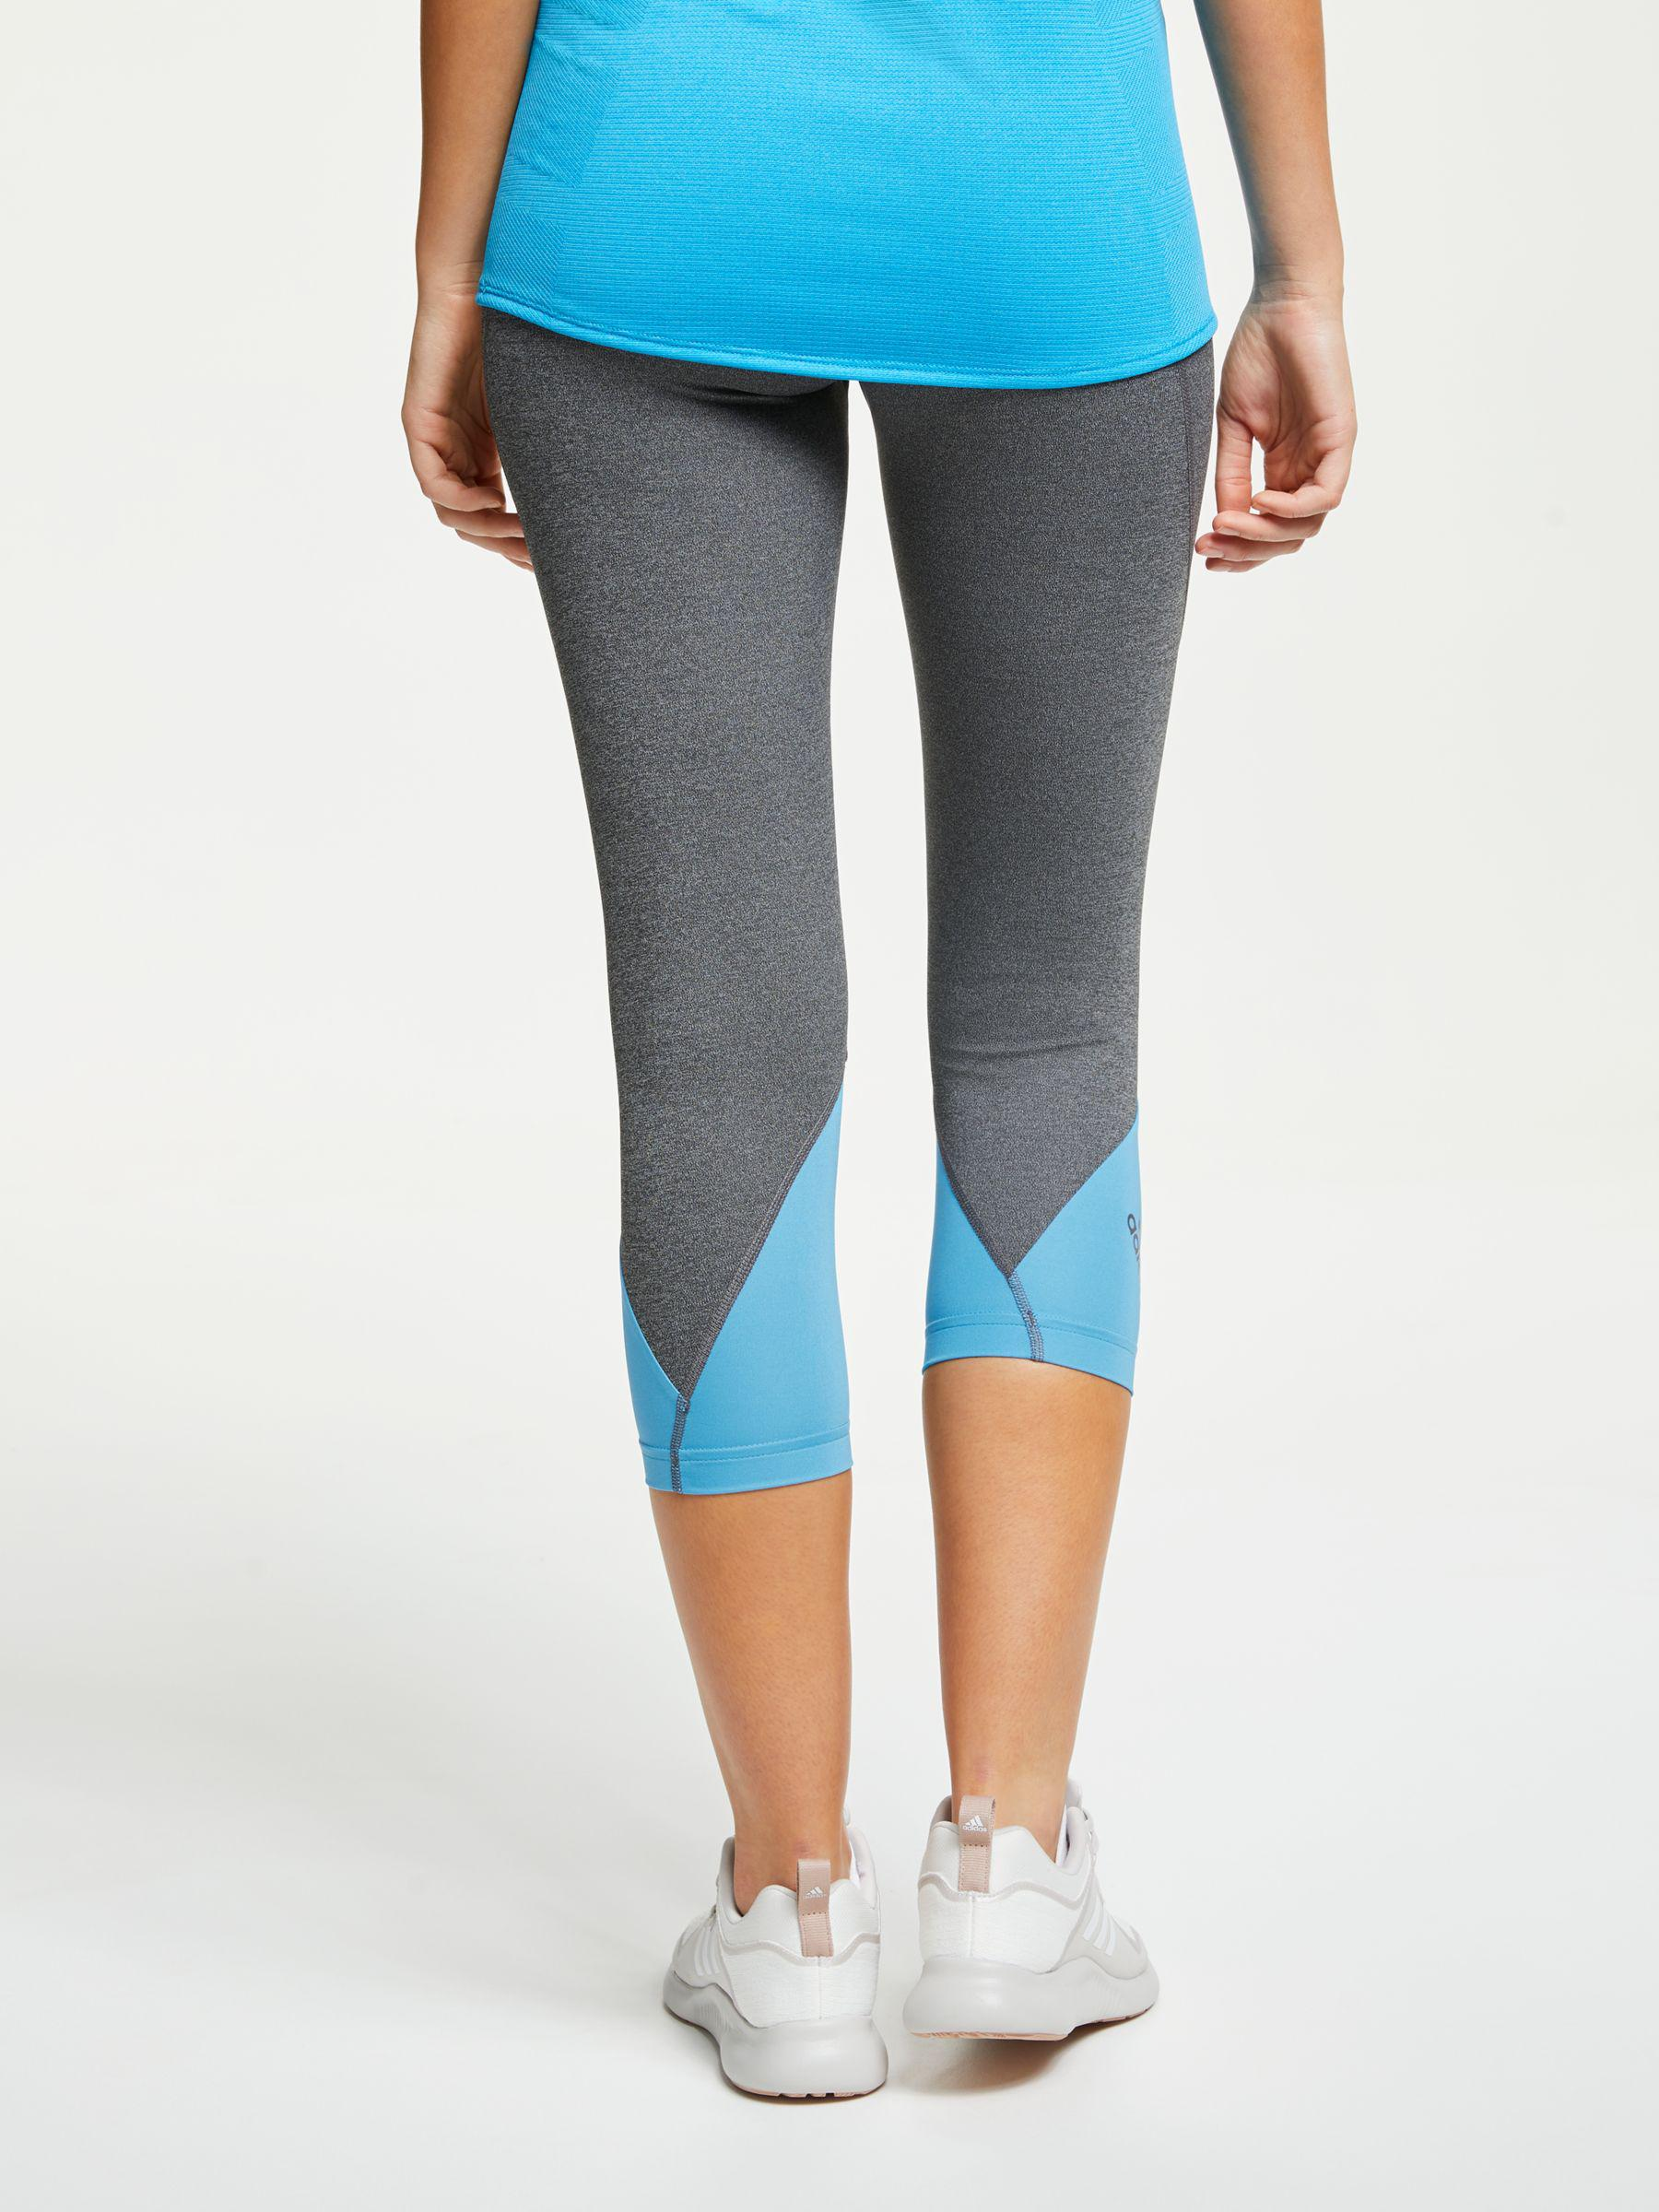 promo code dac0d 551d2 Adidas Alphaskin Sport 2.0 Embossed 34 Training Tights in Bl